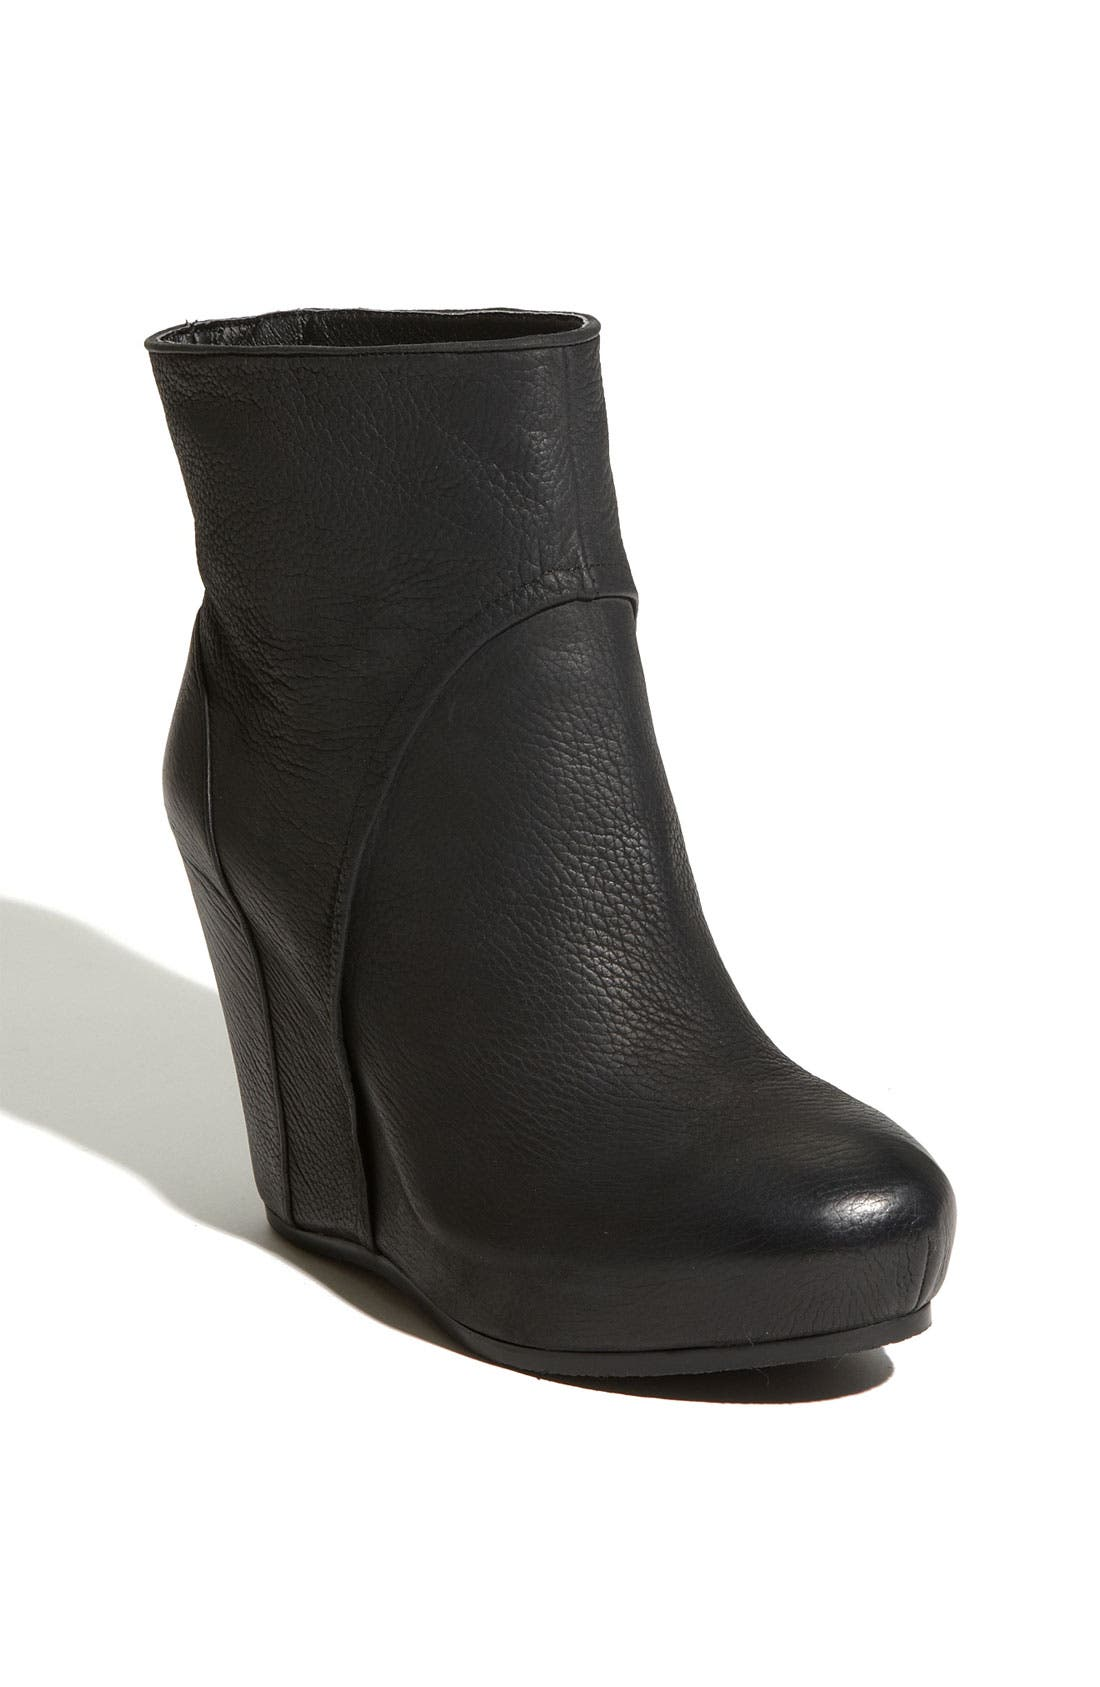 Main Image - Trouvé 'World' Wedge Ankle Boot